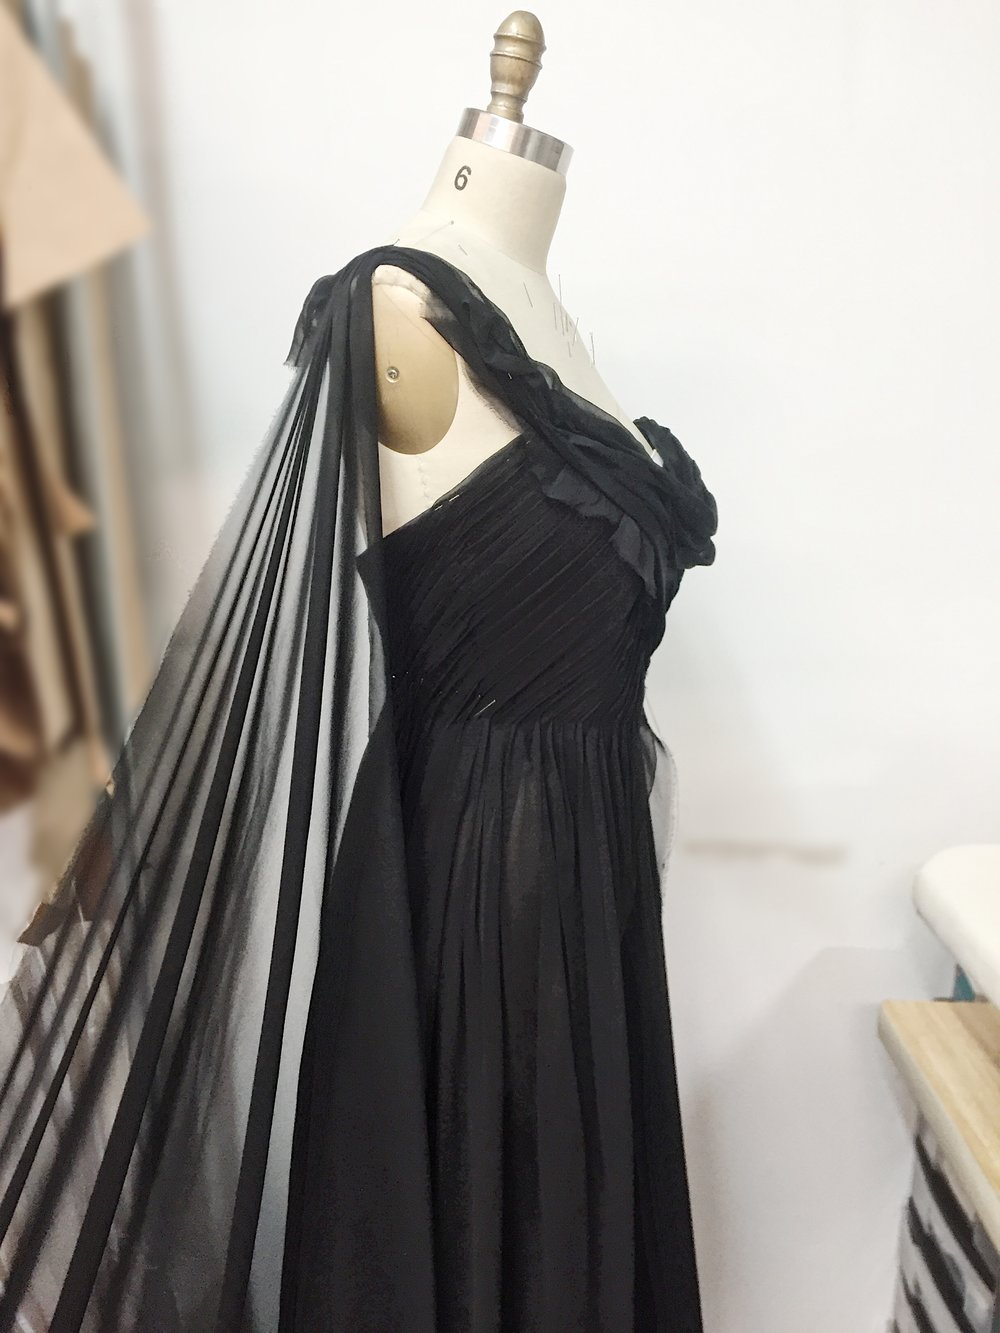 draping for Dierks Bentley - Cassidy's dress for Black video